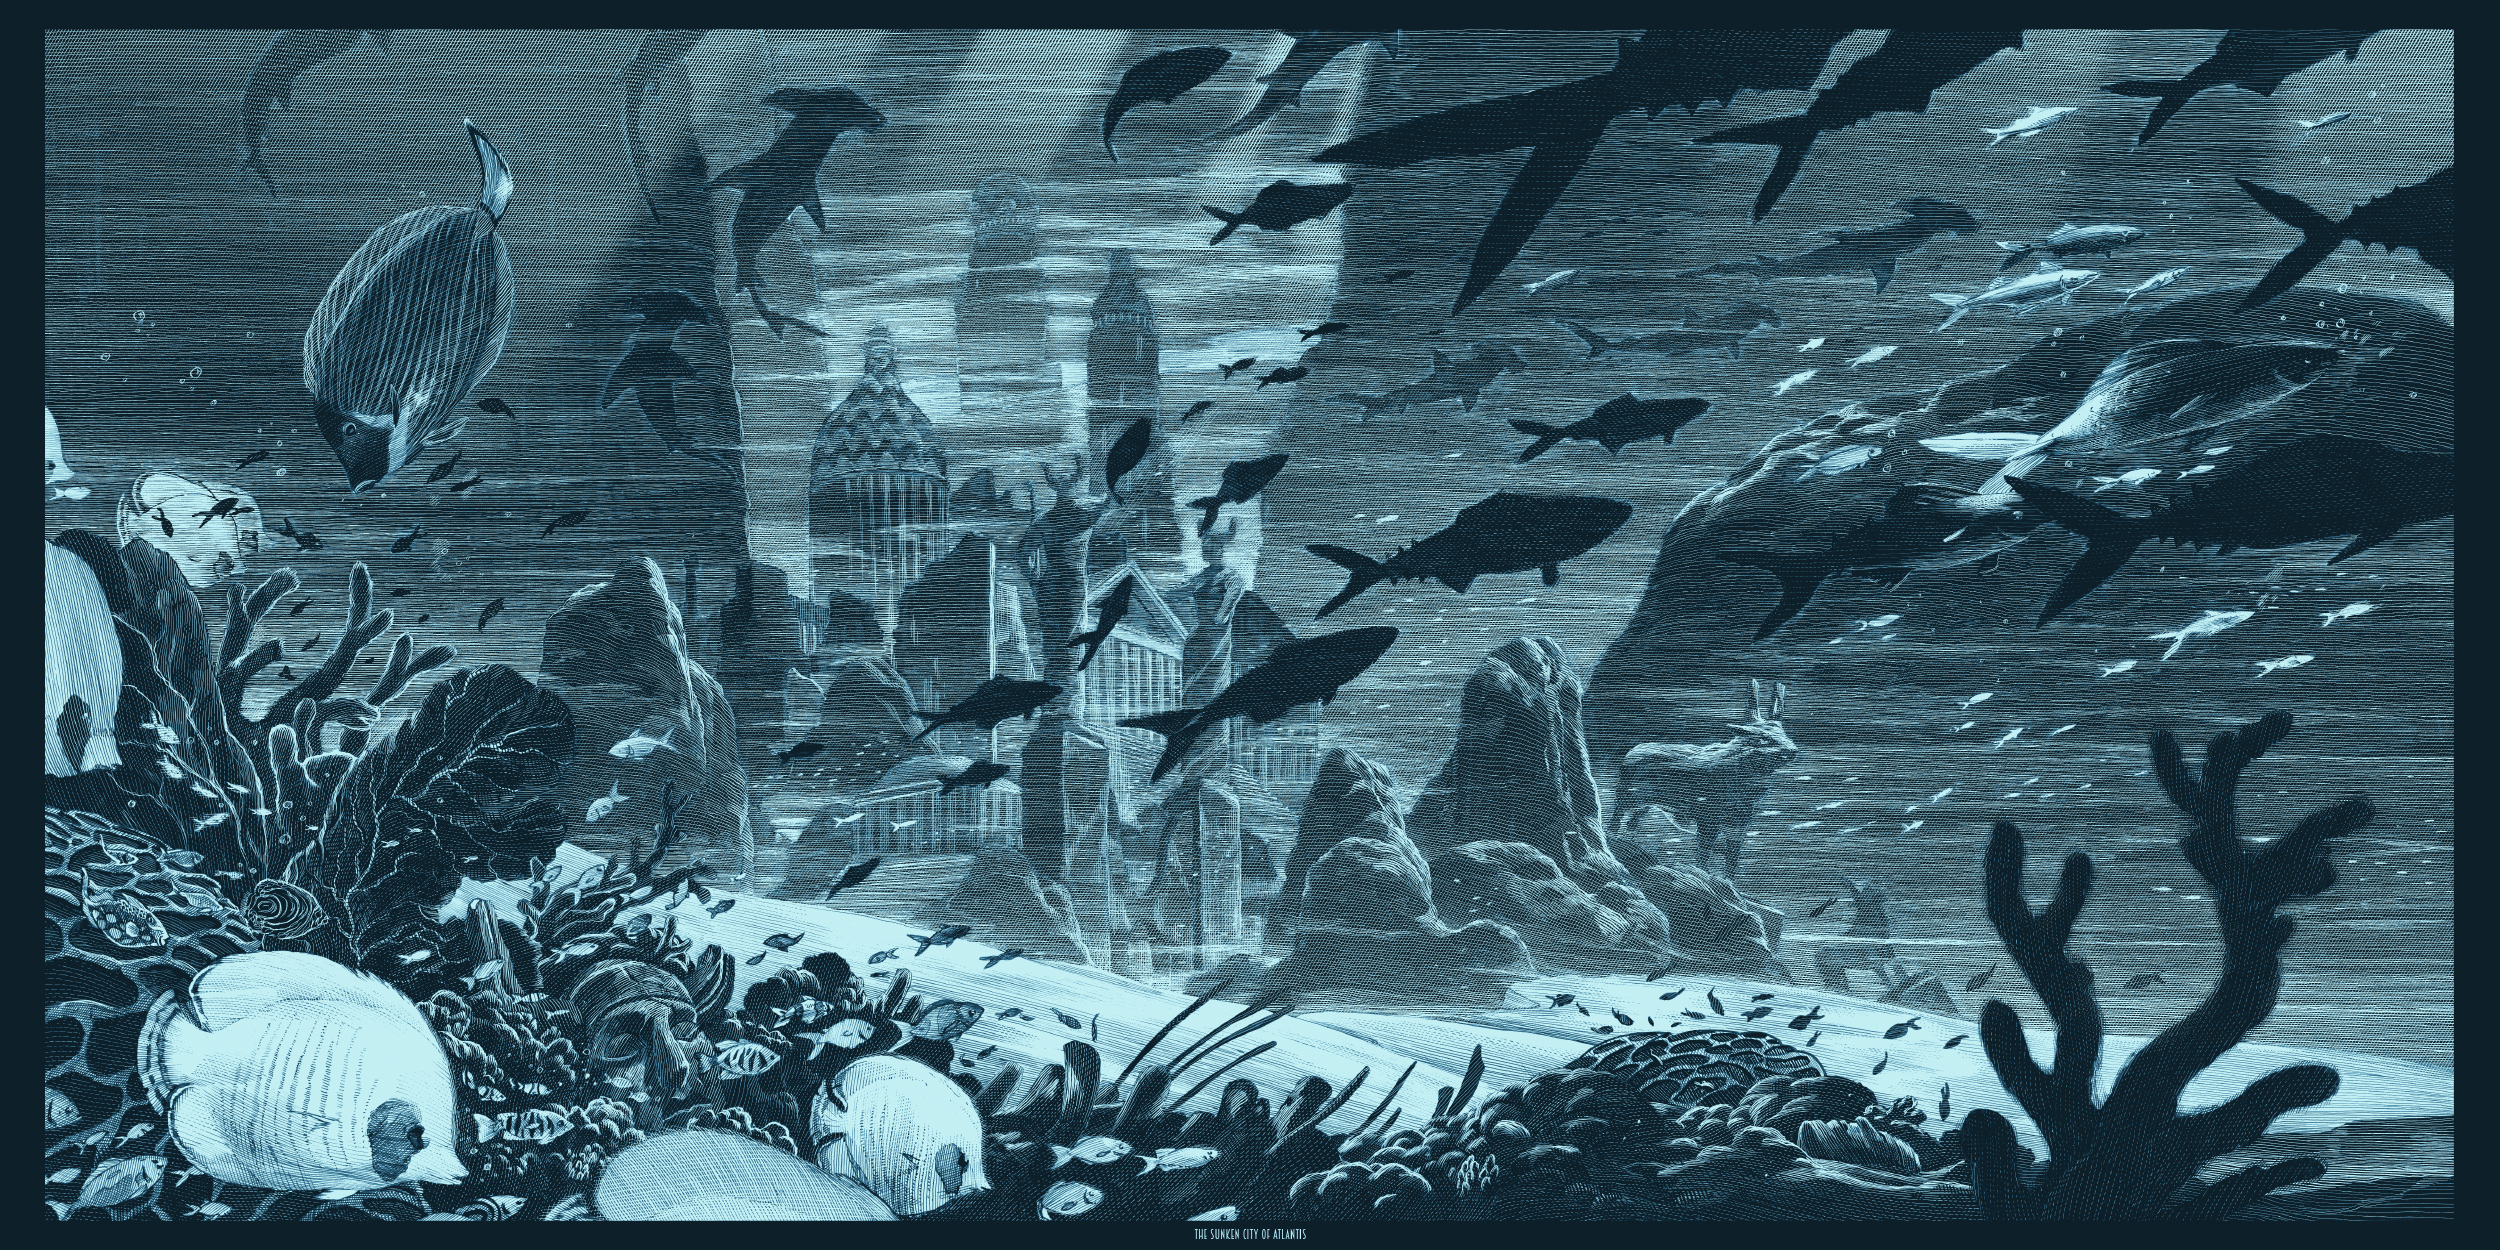 """Atlantis"" by Nicolas Delort.  12"" x 24"" Screenprint w/ metallics.  Ed of 30 N.  $75 (variant)"